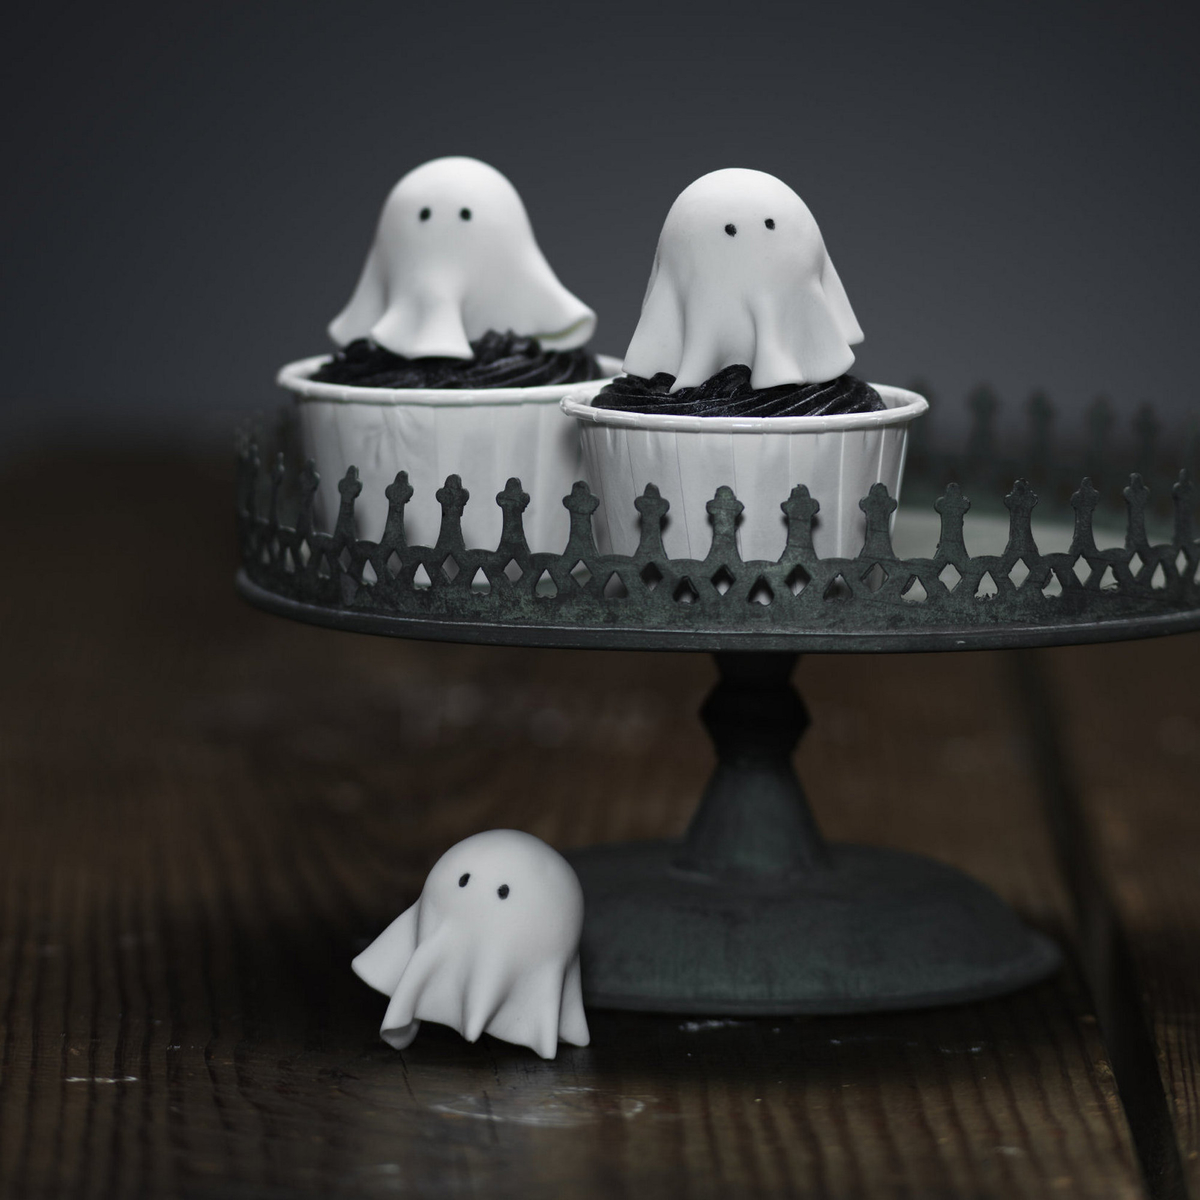 Edible ghosts!